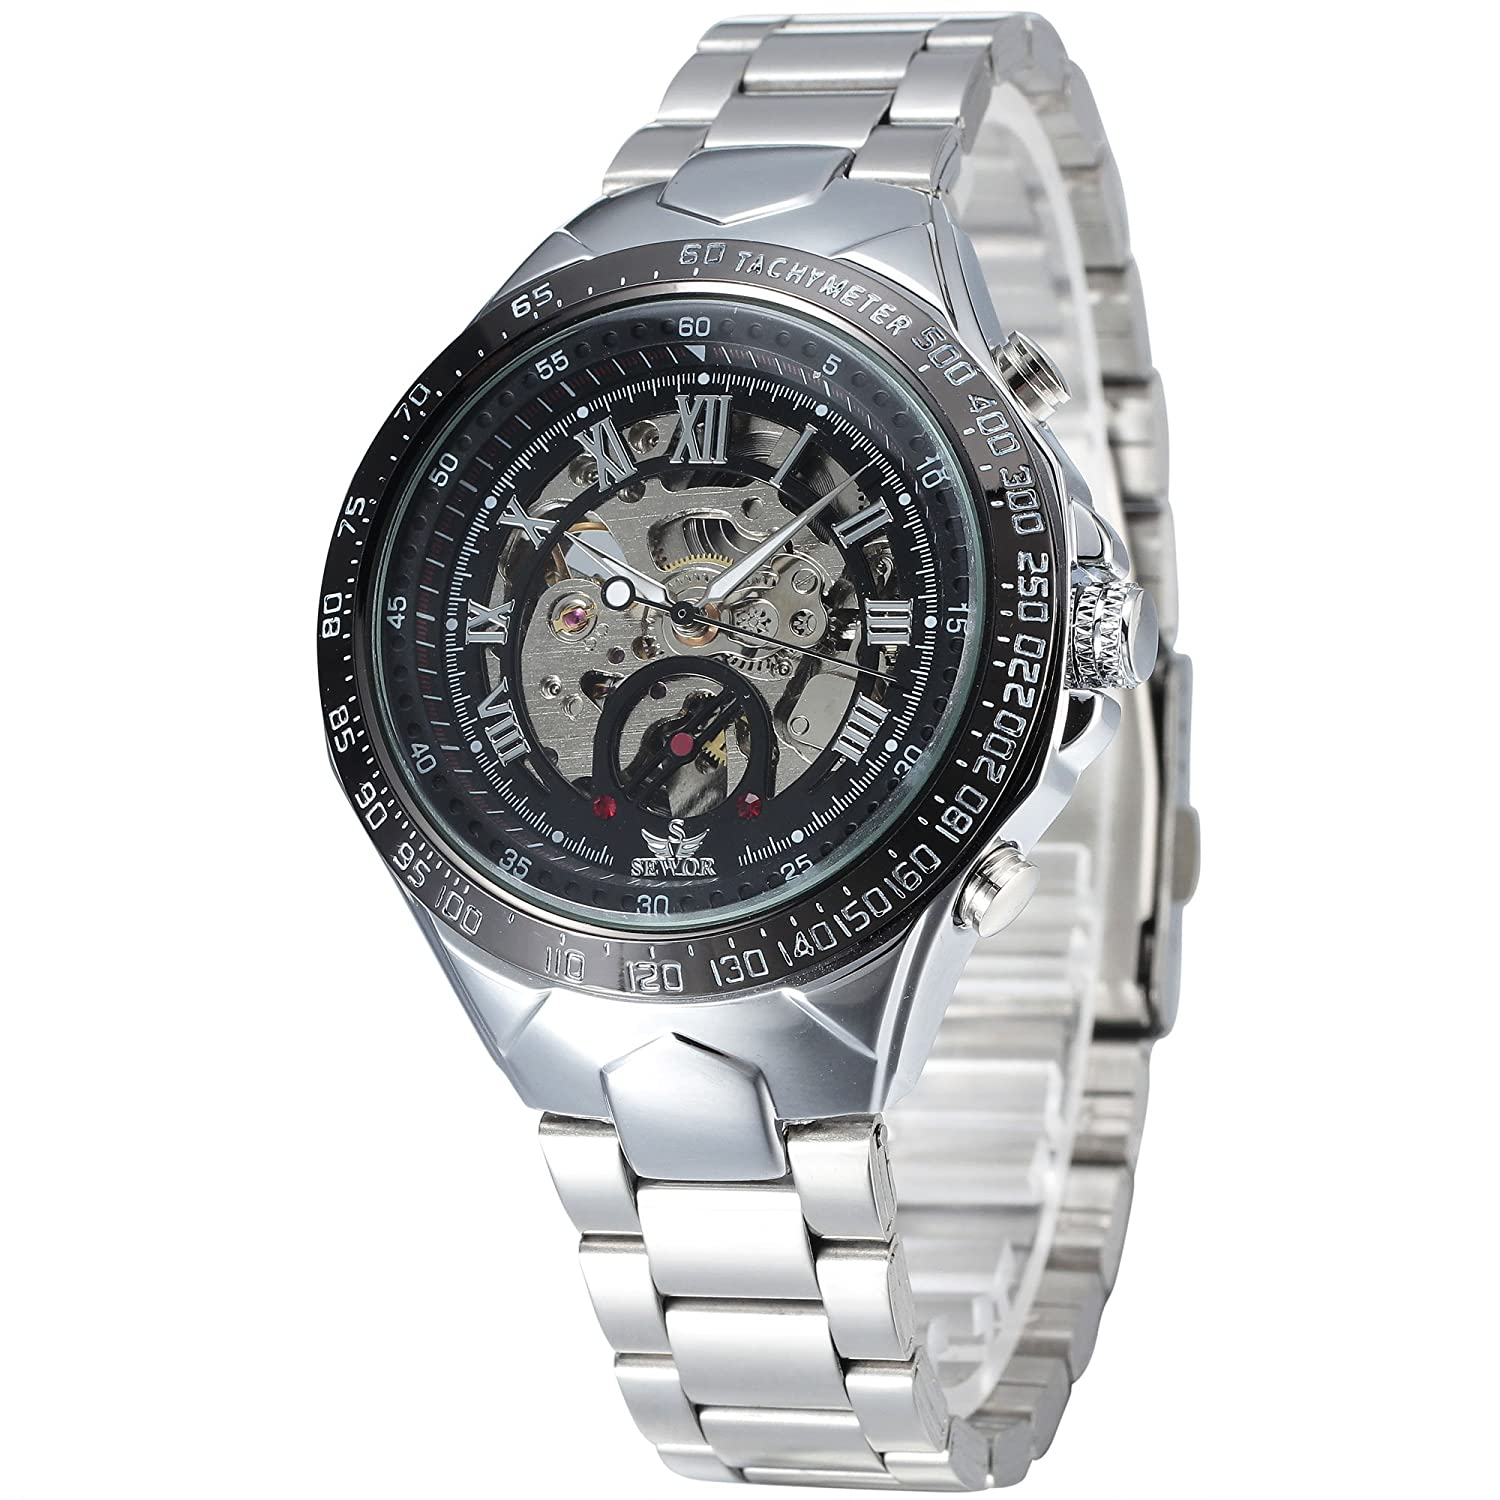 BuyTerest ALPSメンズスケルトン自動Self Winding Mechanical Watch B01B5S2L5C